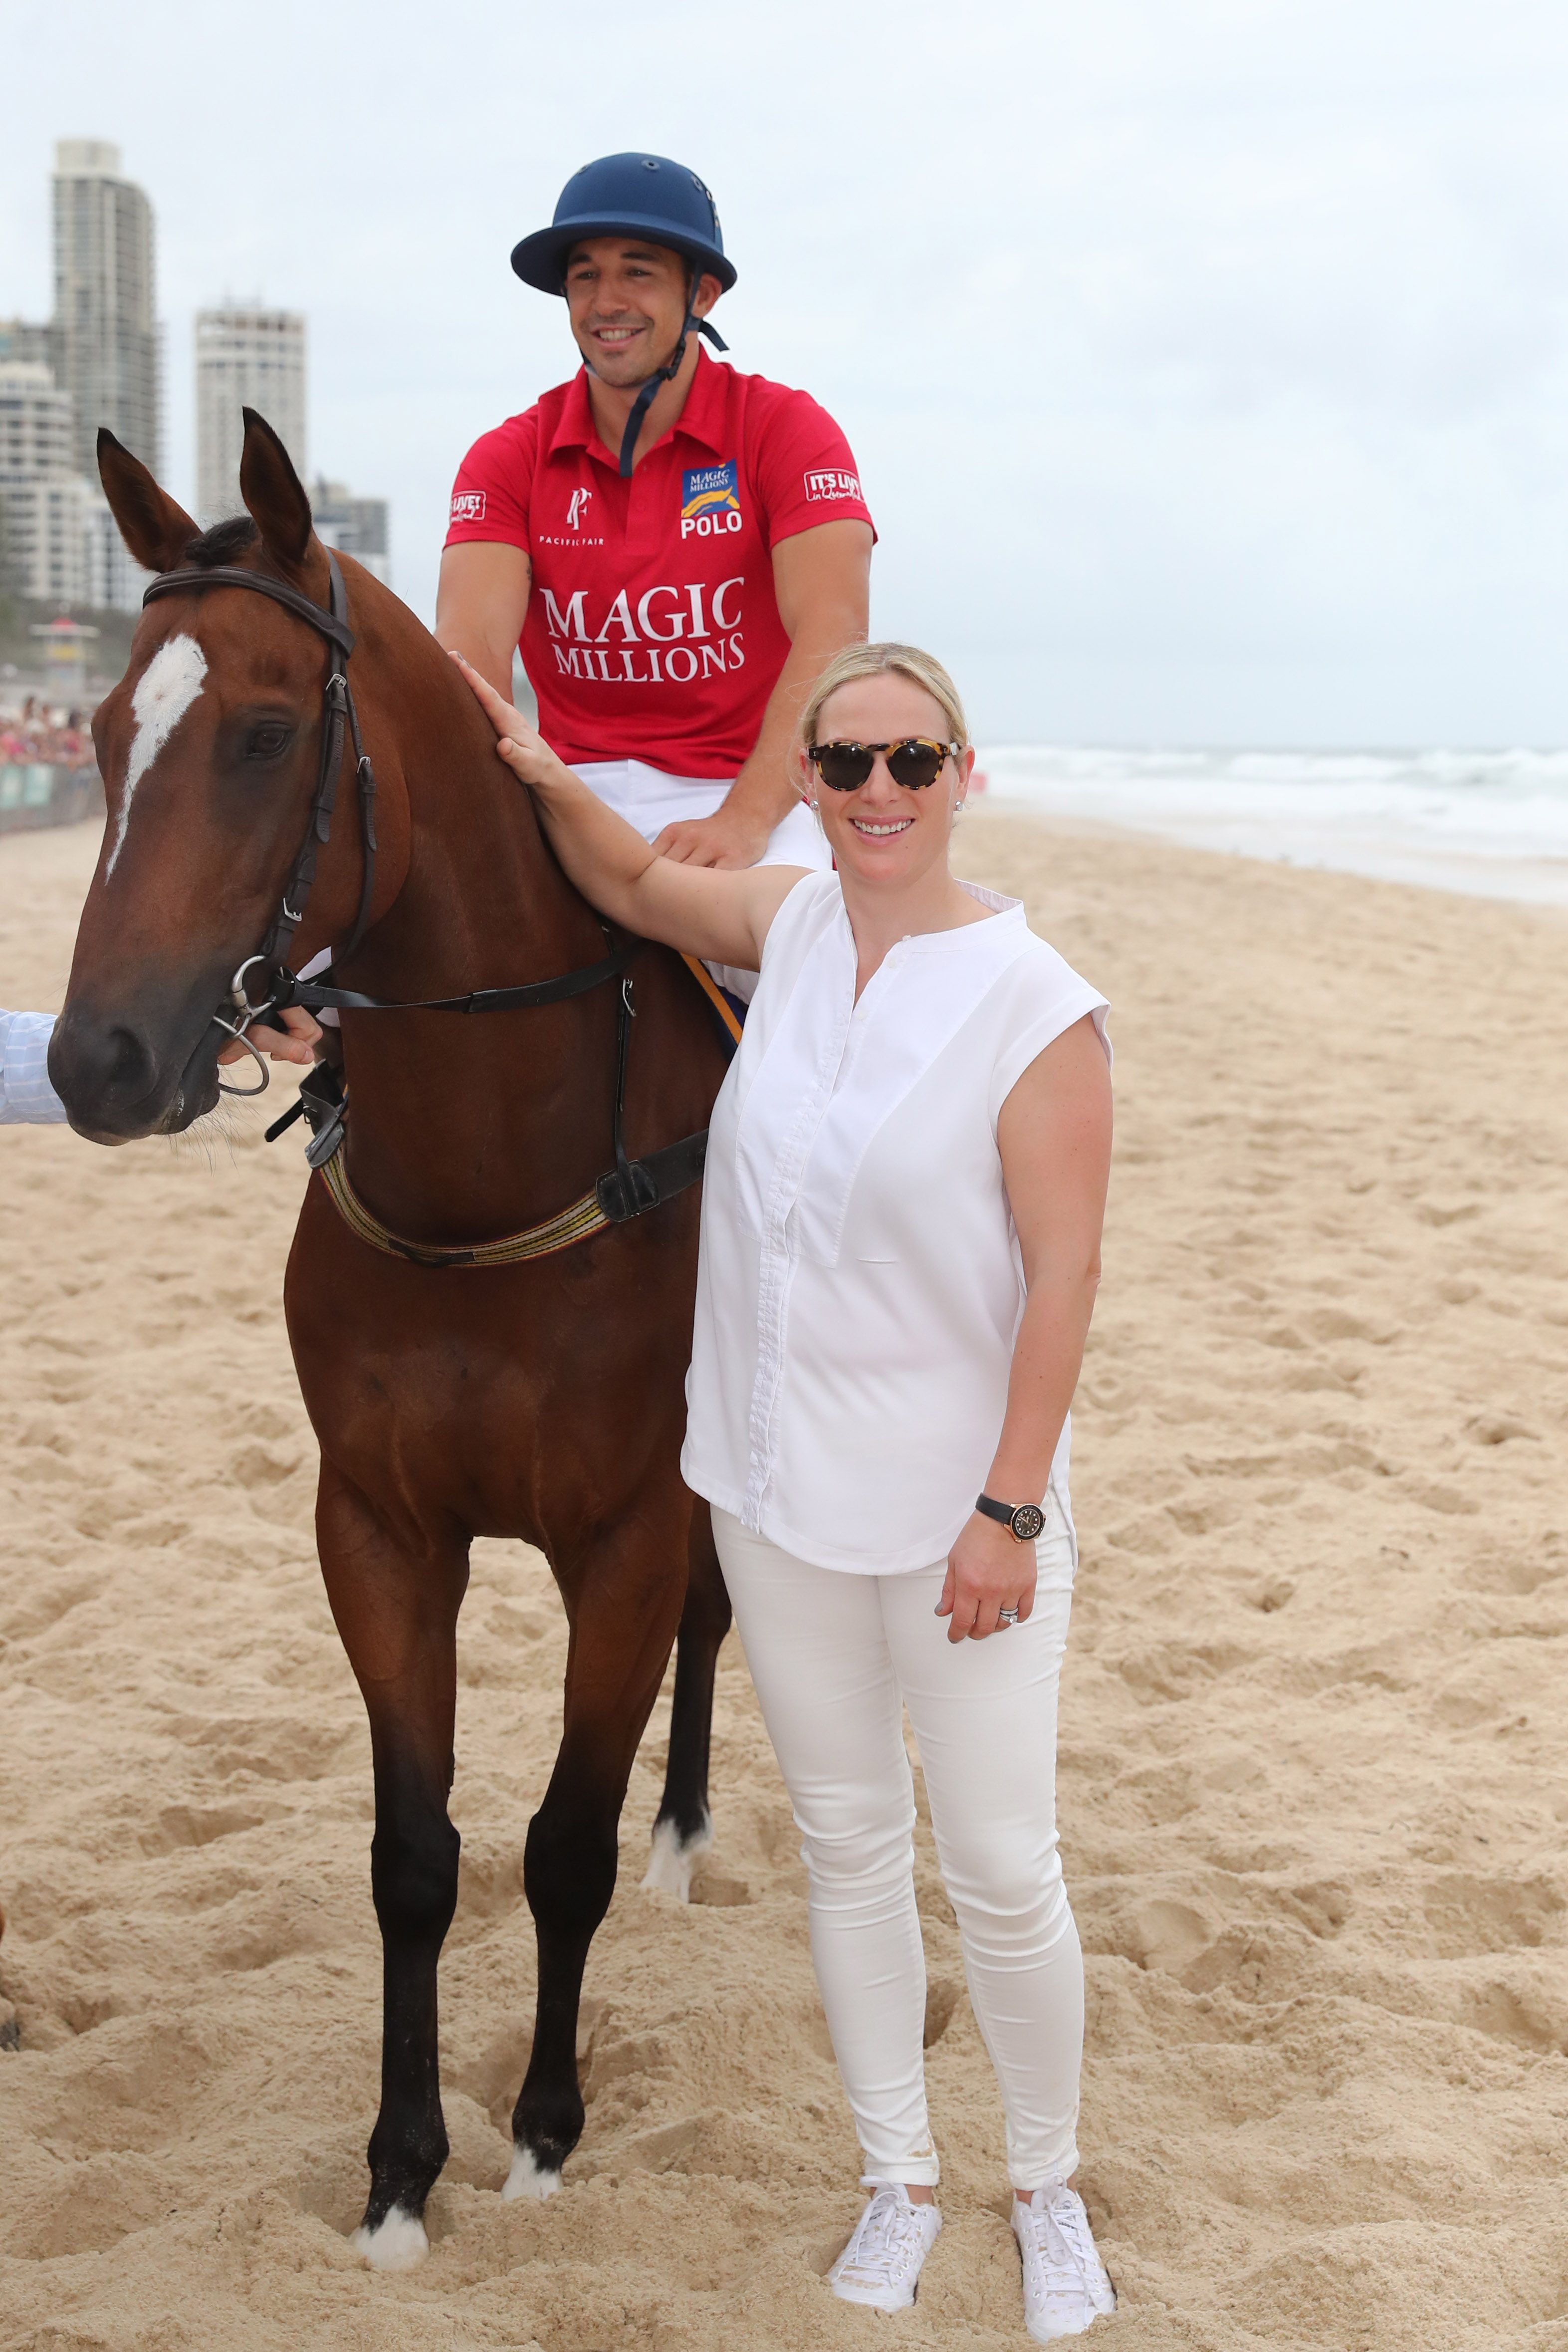 Zara Tindall wore a casual white button down, white jeans, sneakers, and tortoise shell sunglasses as she posed with equestrian Billy Slater during the 2019 Magic Millions draw.